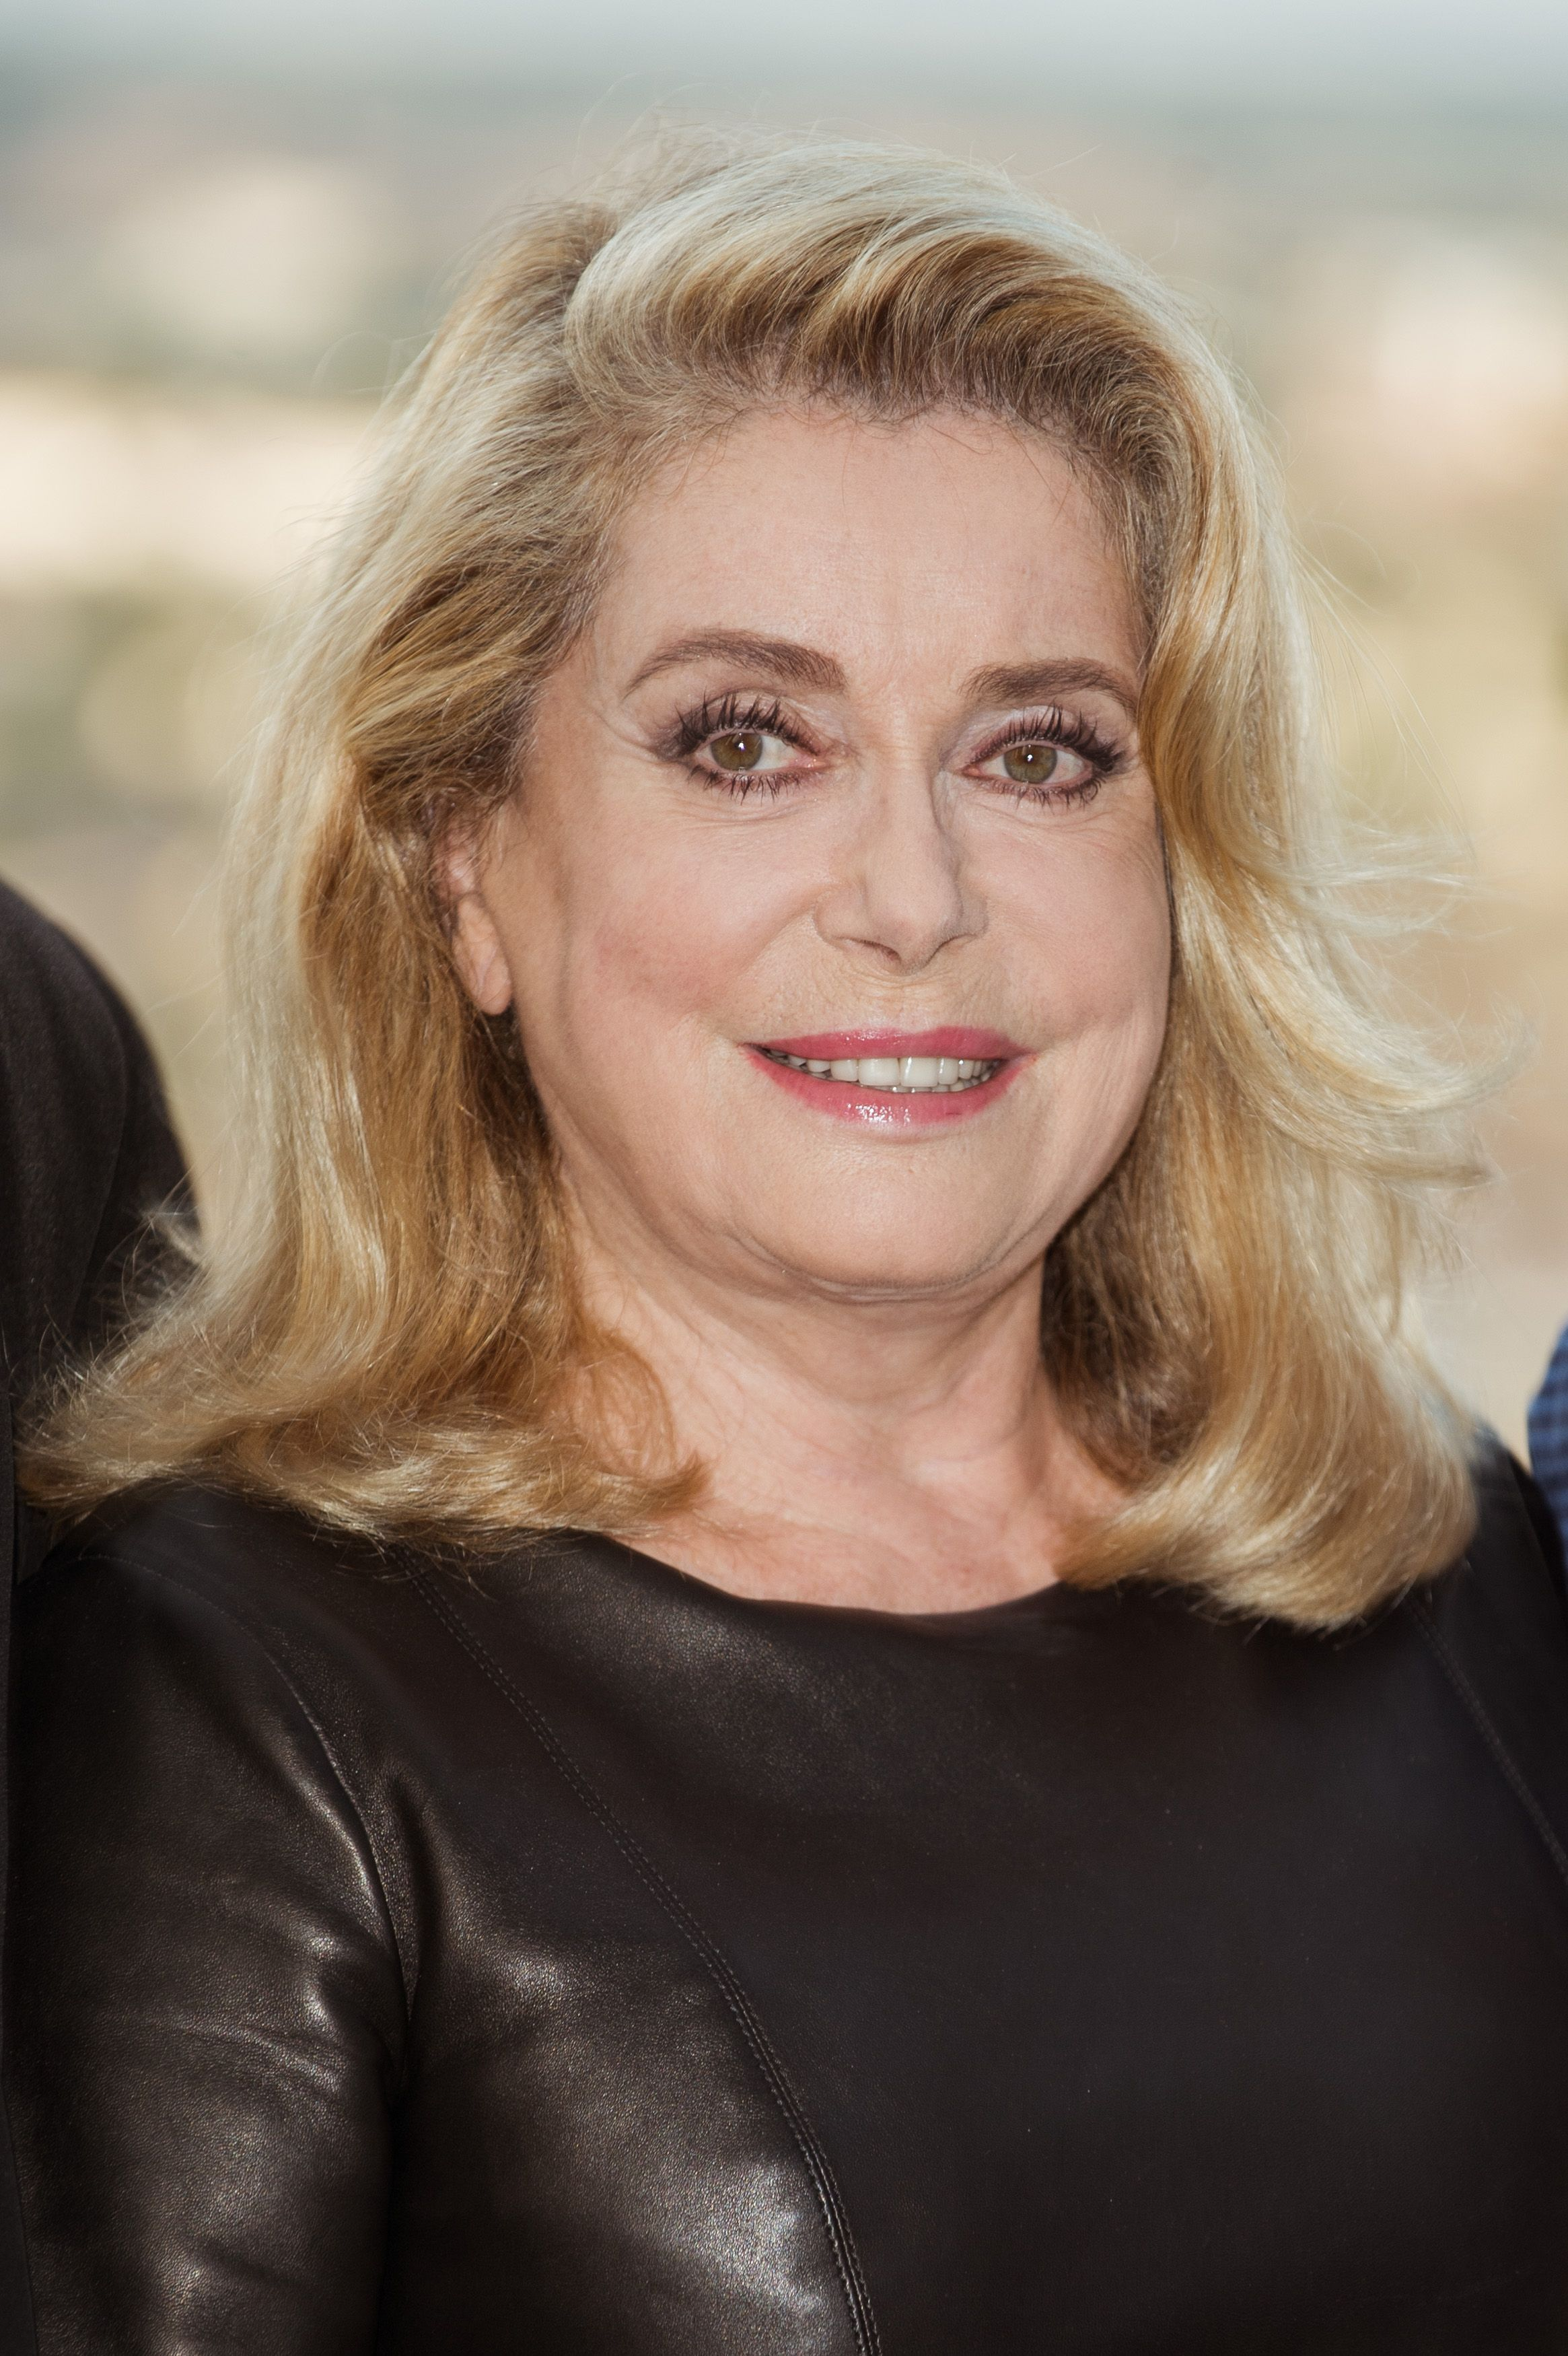 Catherine Deneuve participe au 10e Festival du film francophone d'Angoulême à Angoulême, France. | Photo : Getty Images